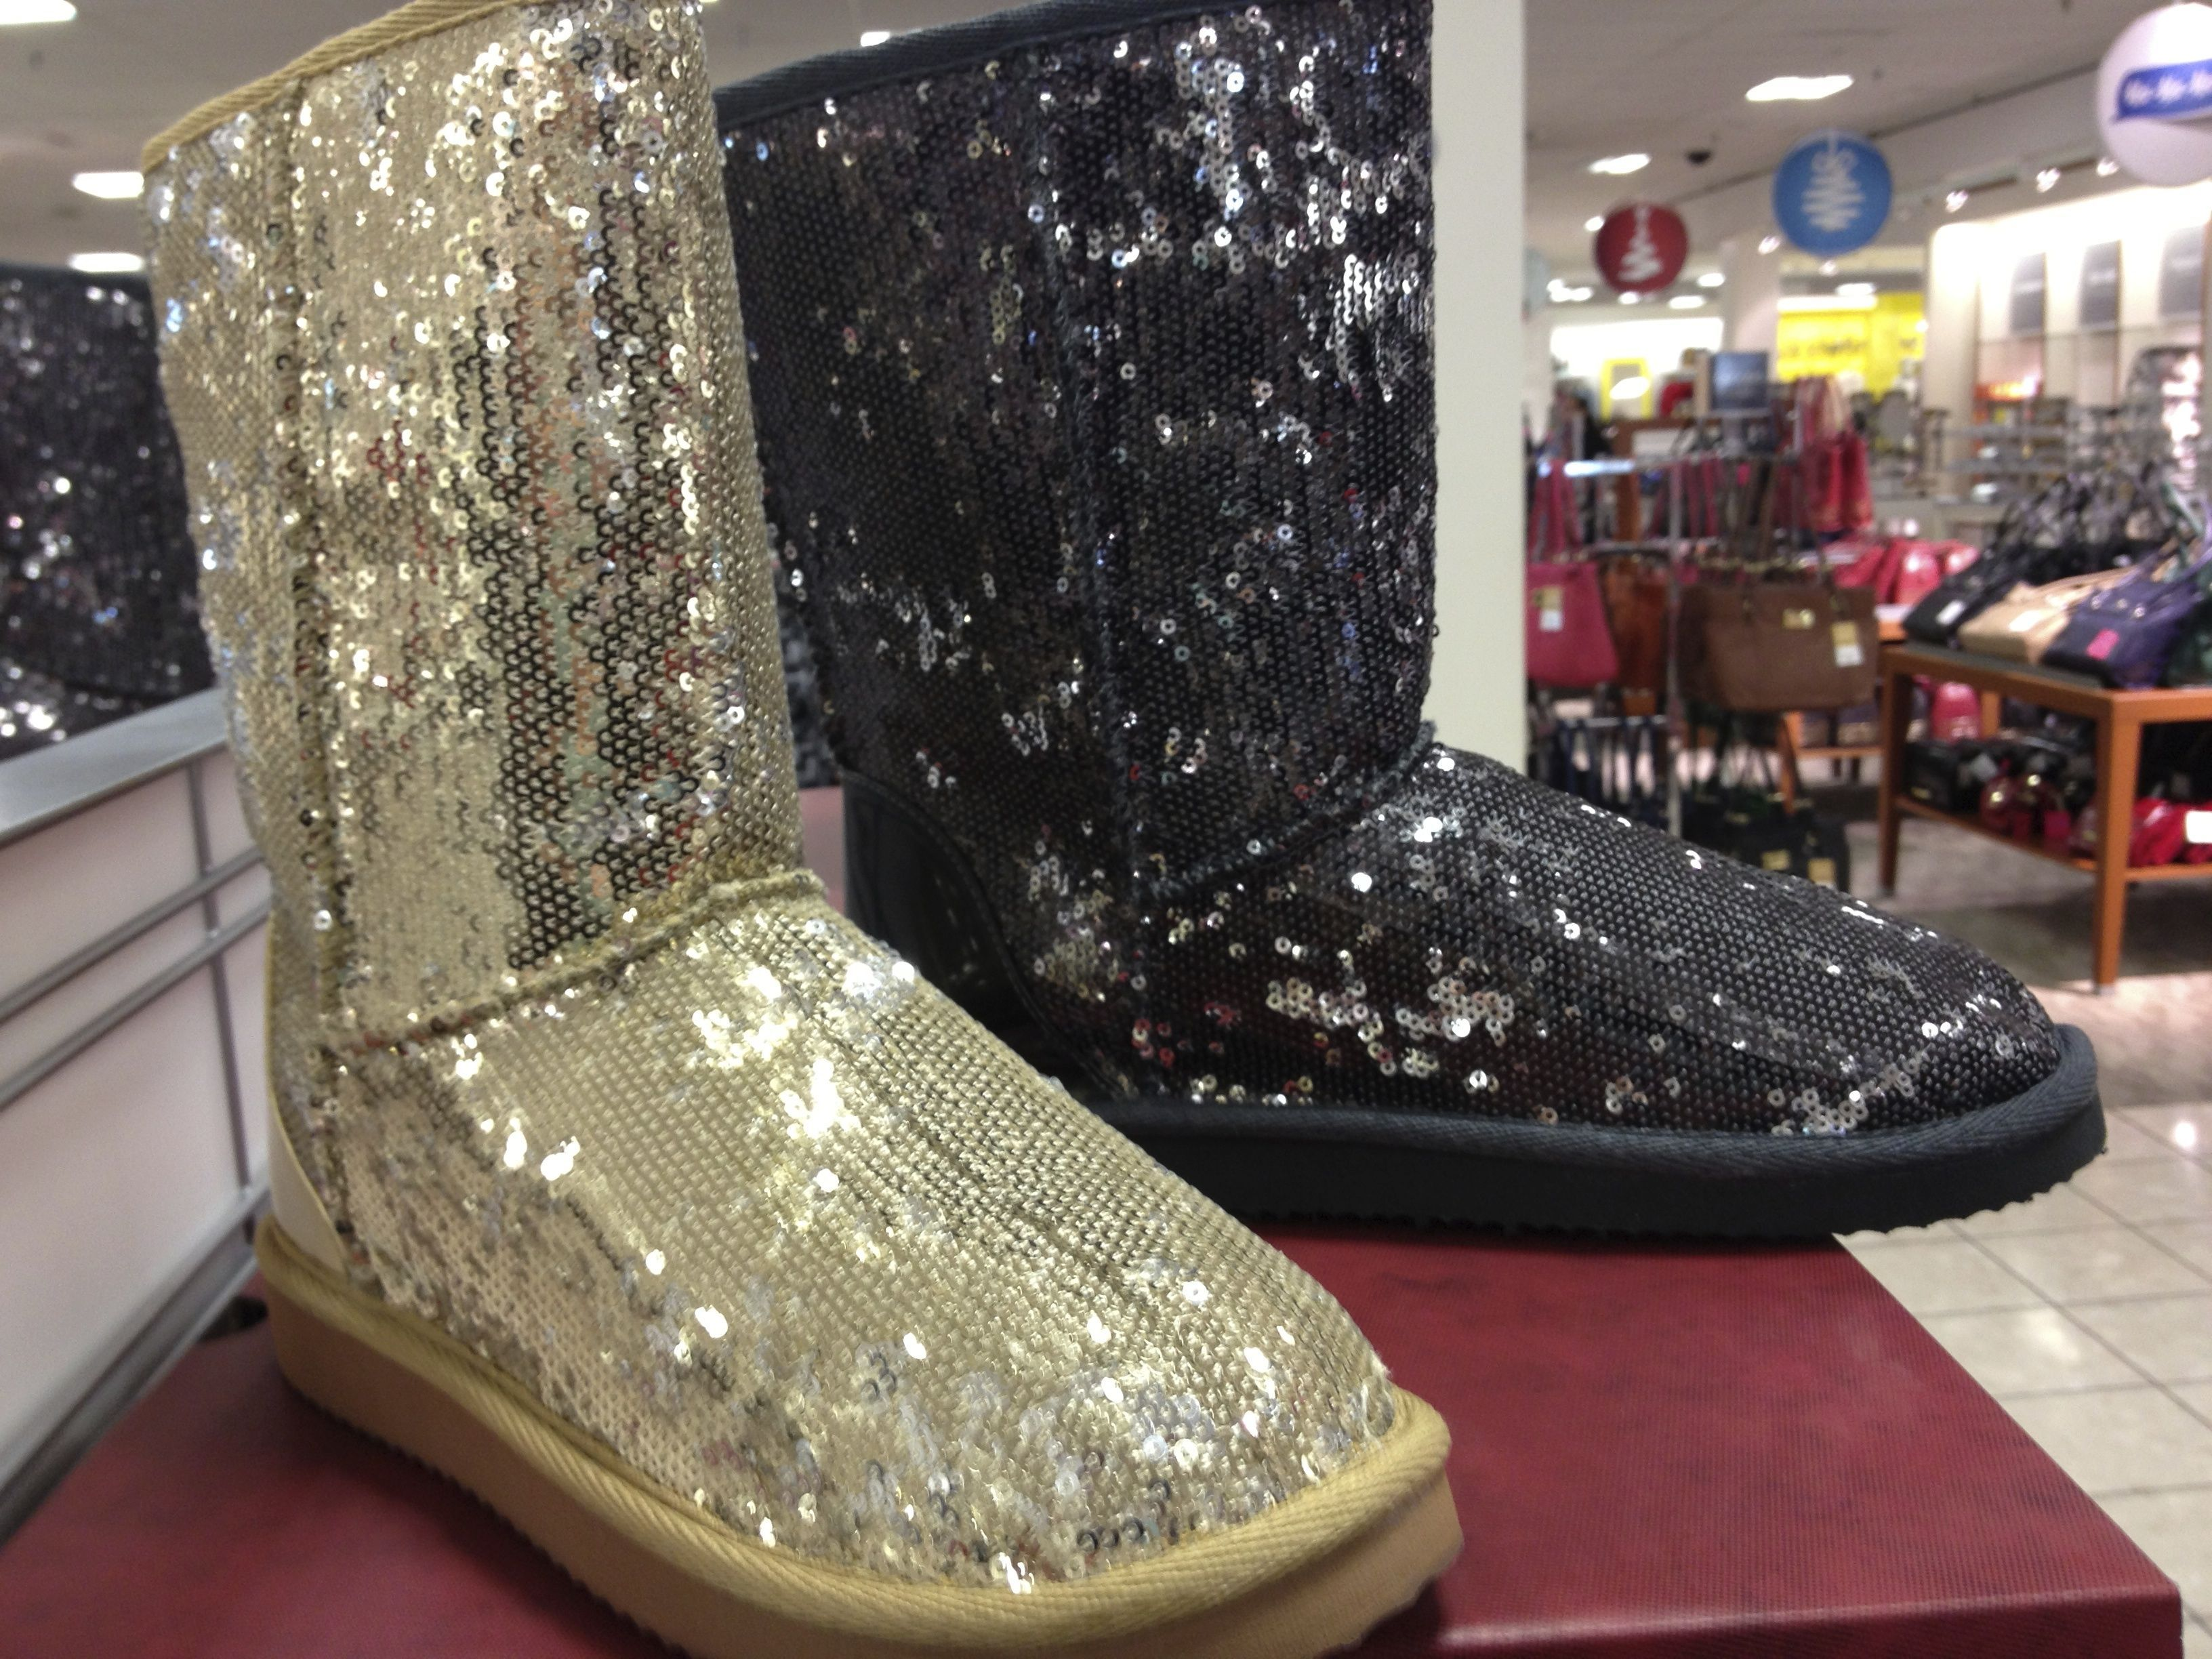 For Those Dressy Holiday Events When Only Formal Uggs Will